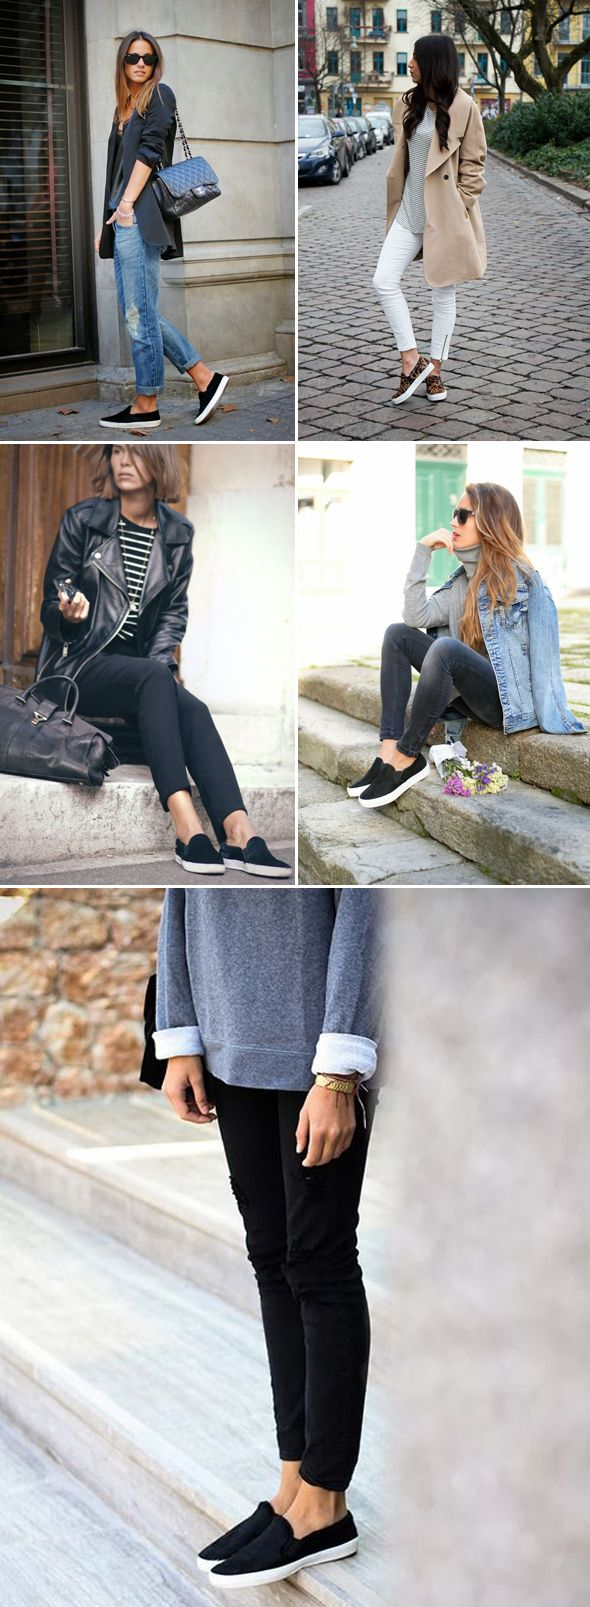 Slip On Sneakers - my favorite shoes for spring!